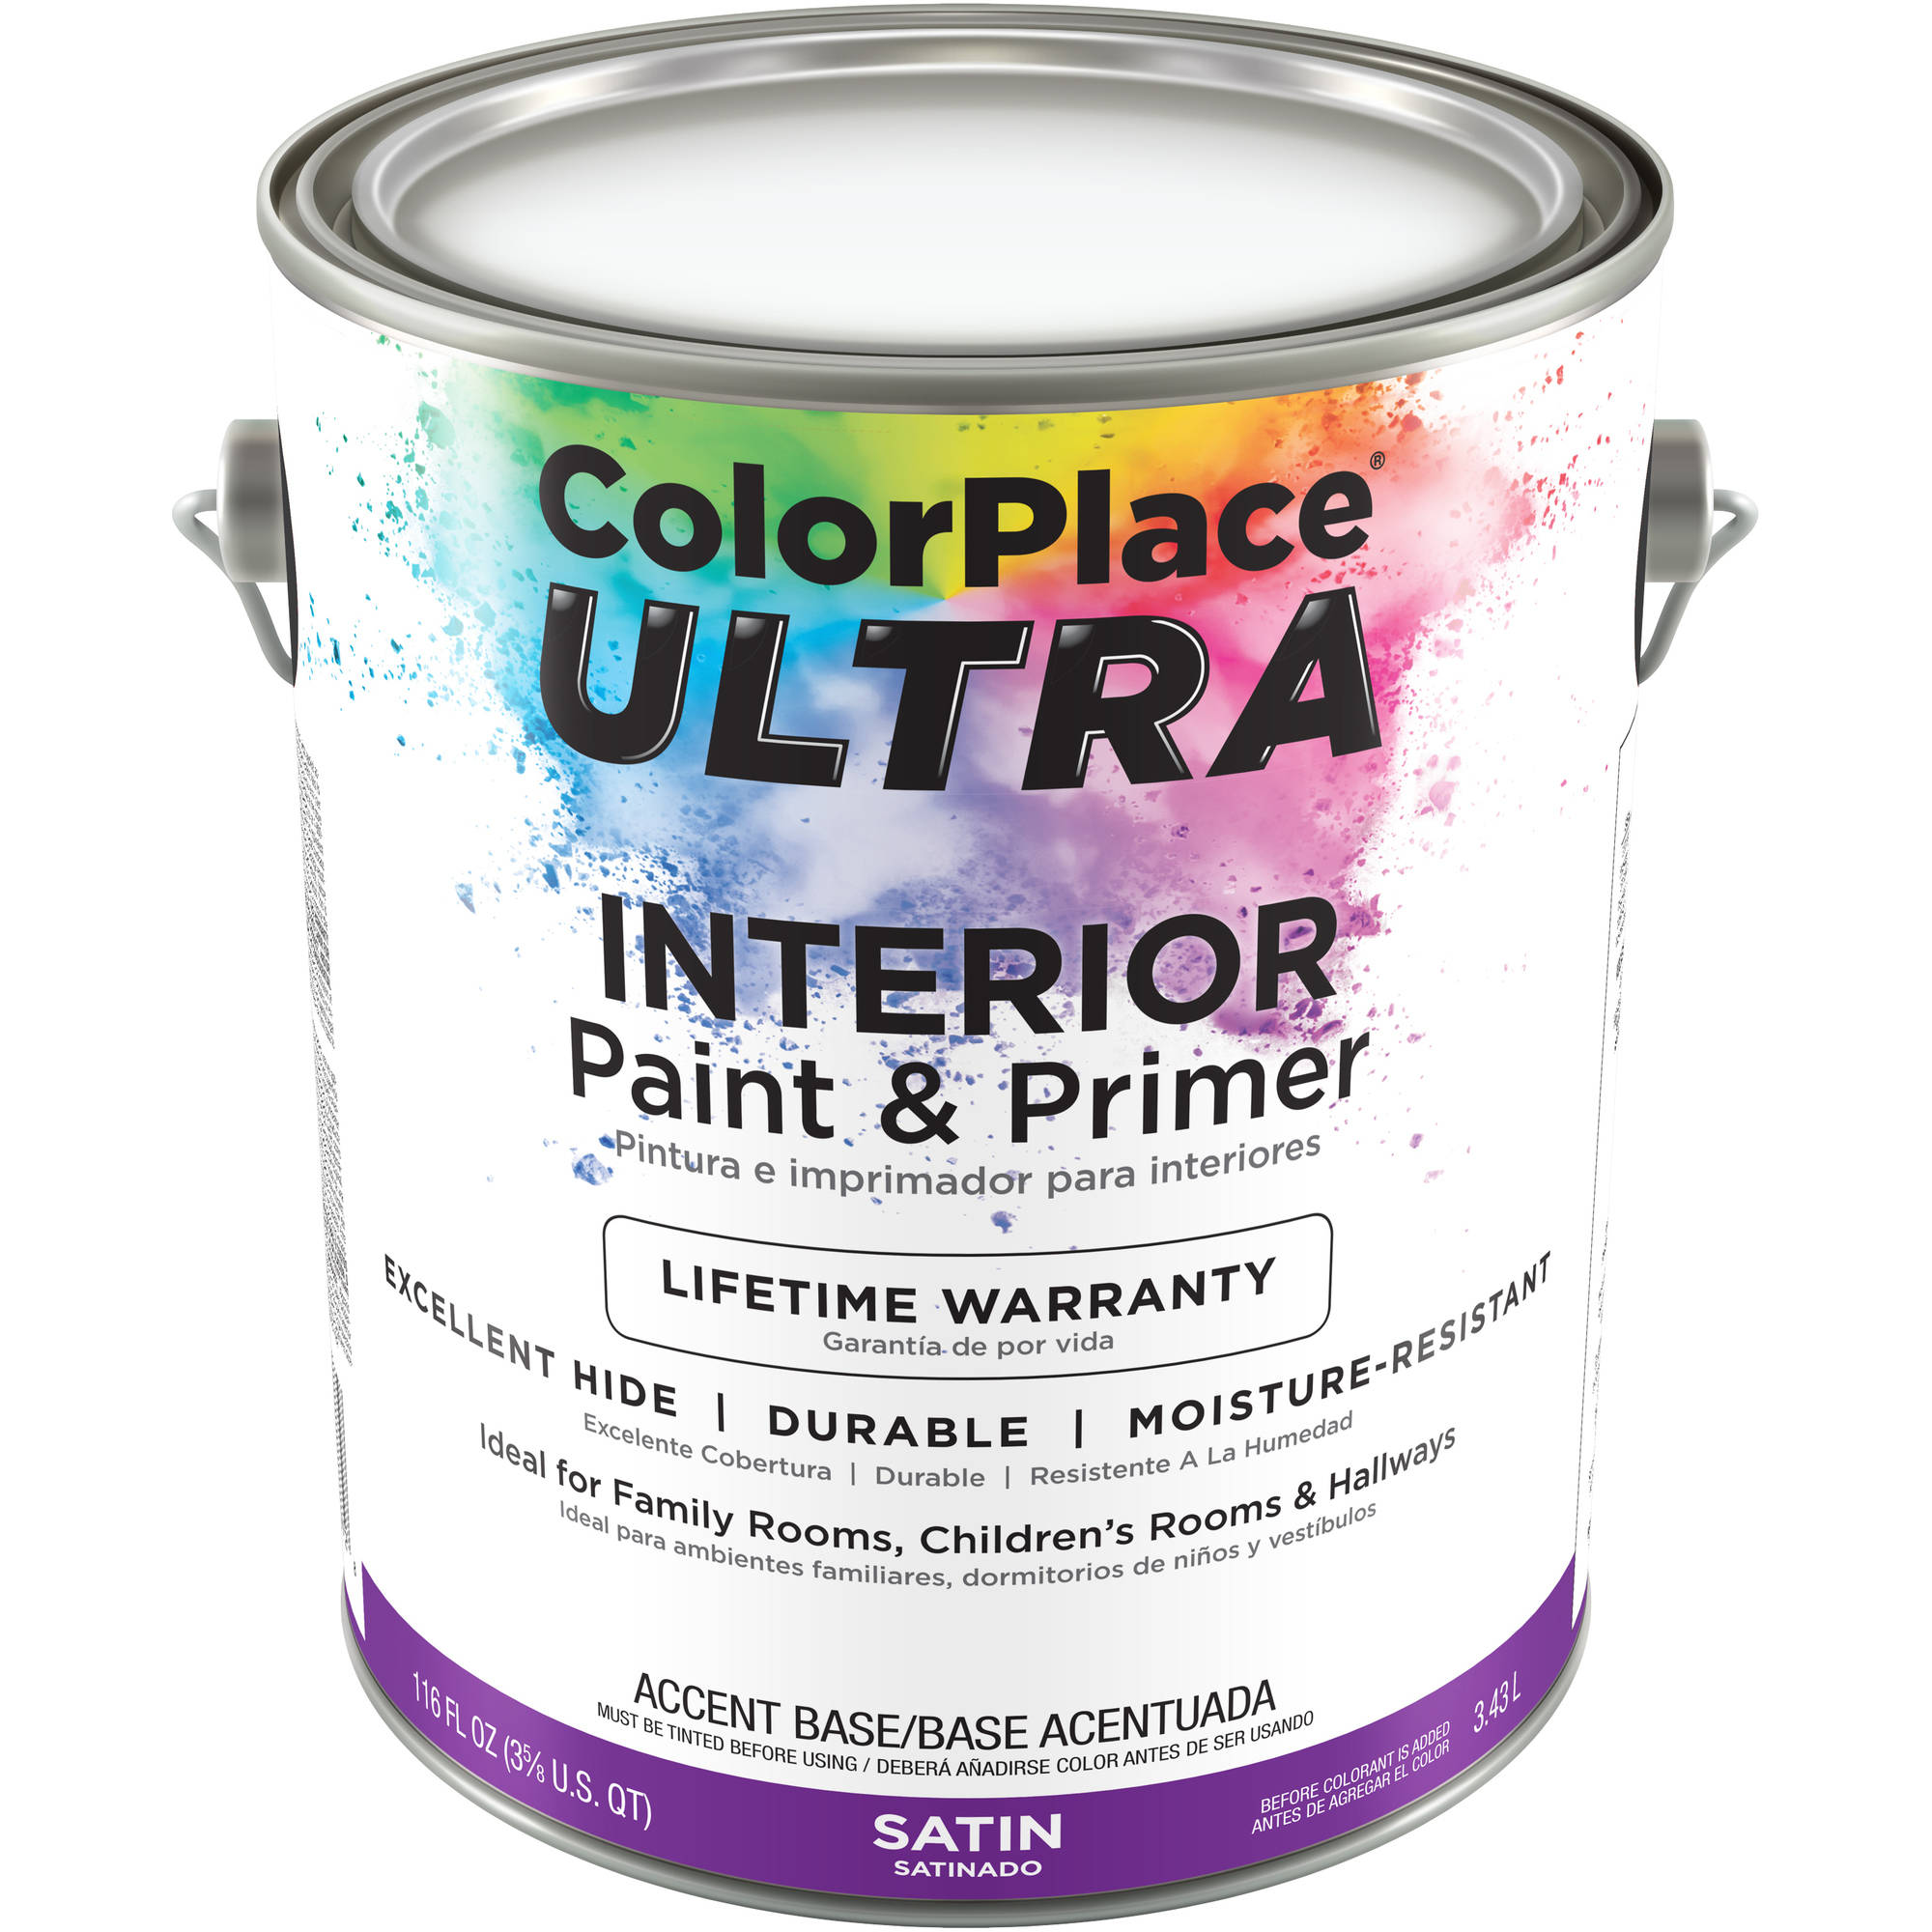 color place ultra satin interior accent base paint and primer, 1 gal